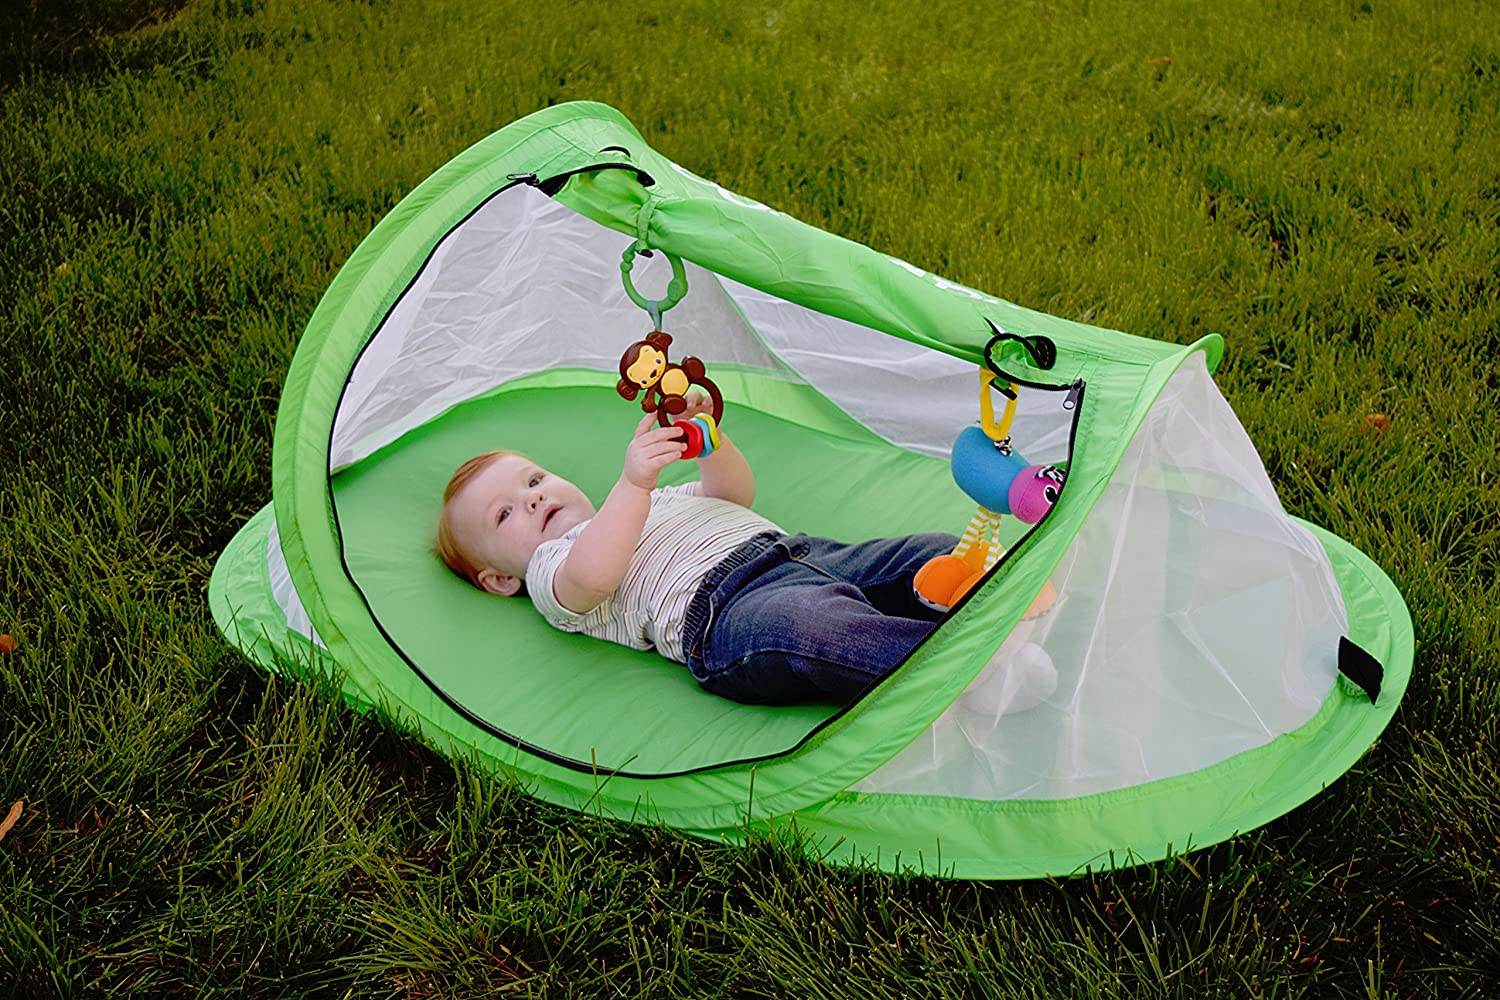 Amazon.com  Baby tent Pop-Up beach tent Instant travel tent for baby Protect from sun u0026 bugs (Green)  Baby & Amazon.com : Baby tent Pop-Up beach tent Instant travel tent for ...